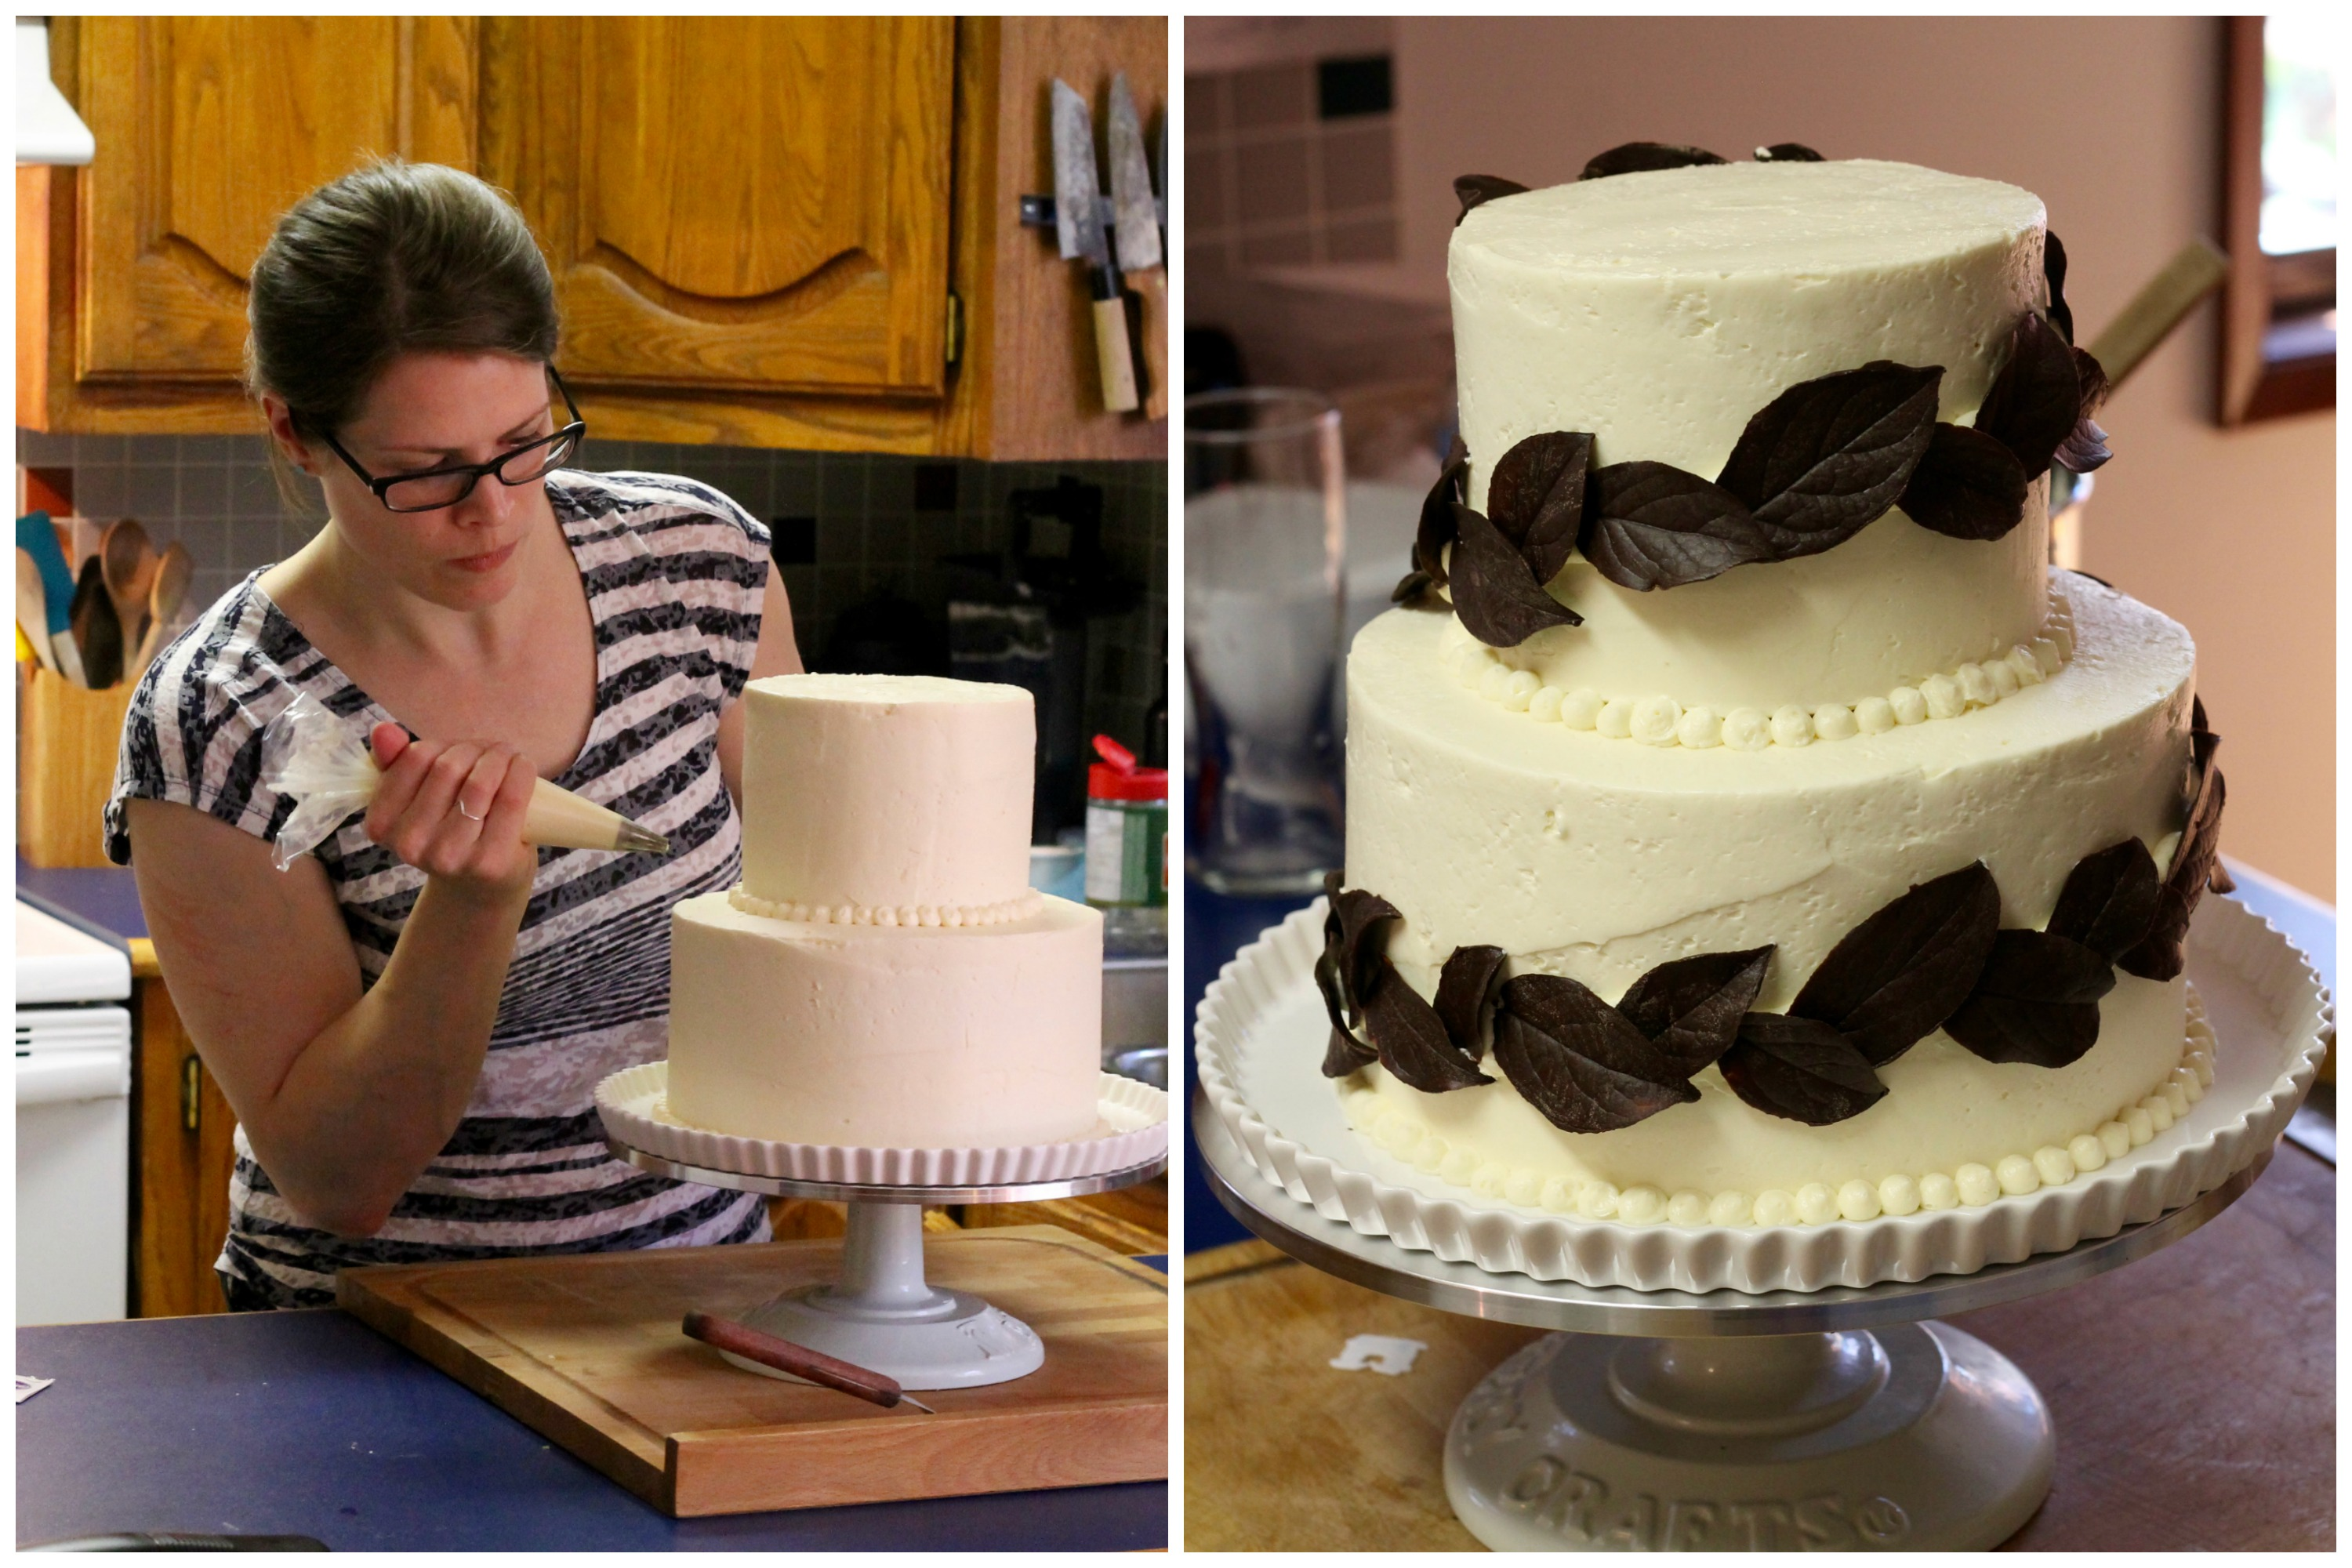 Homemade Cake Decoration Images : Homemade Wedding Cake, Part III: Assembly and Decoration